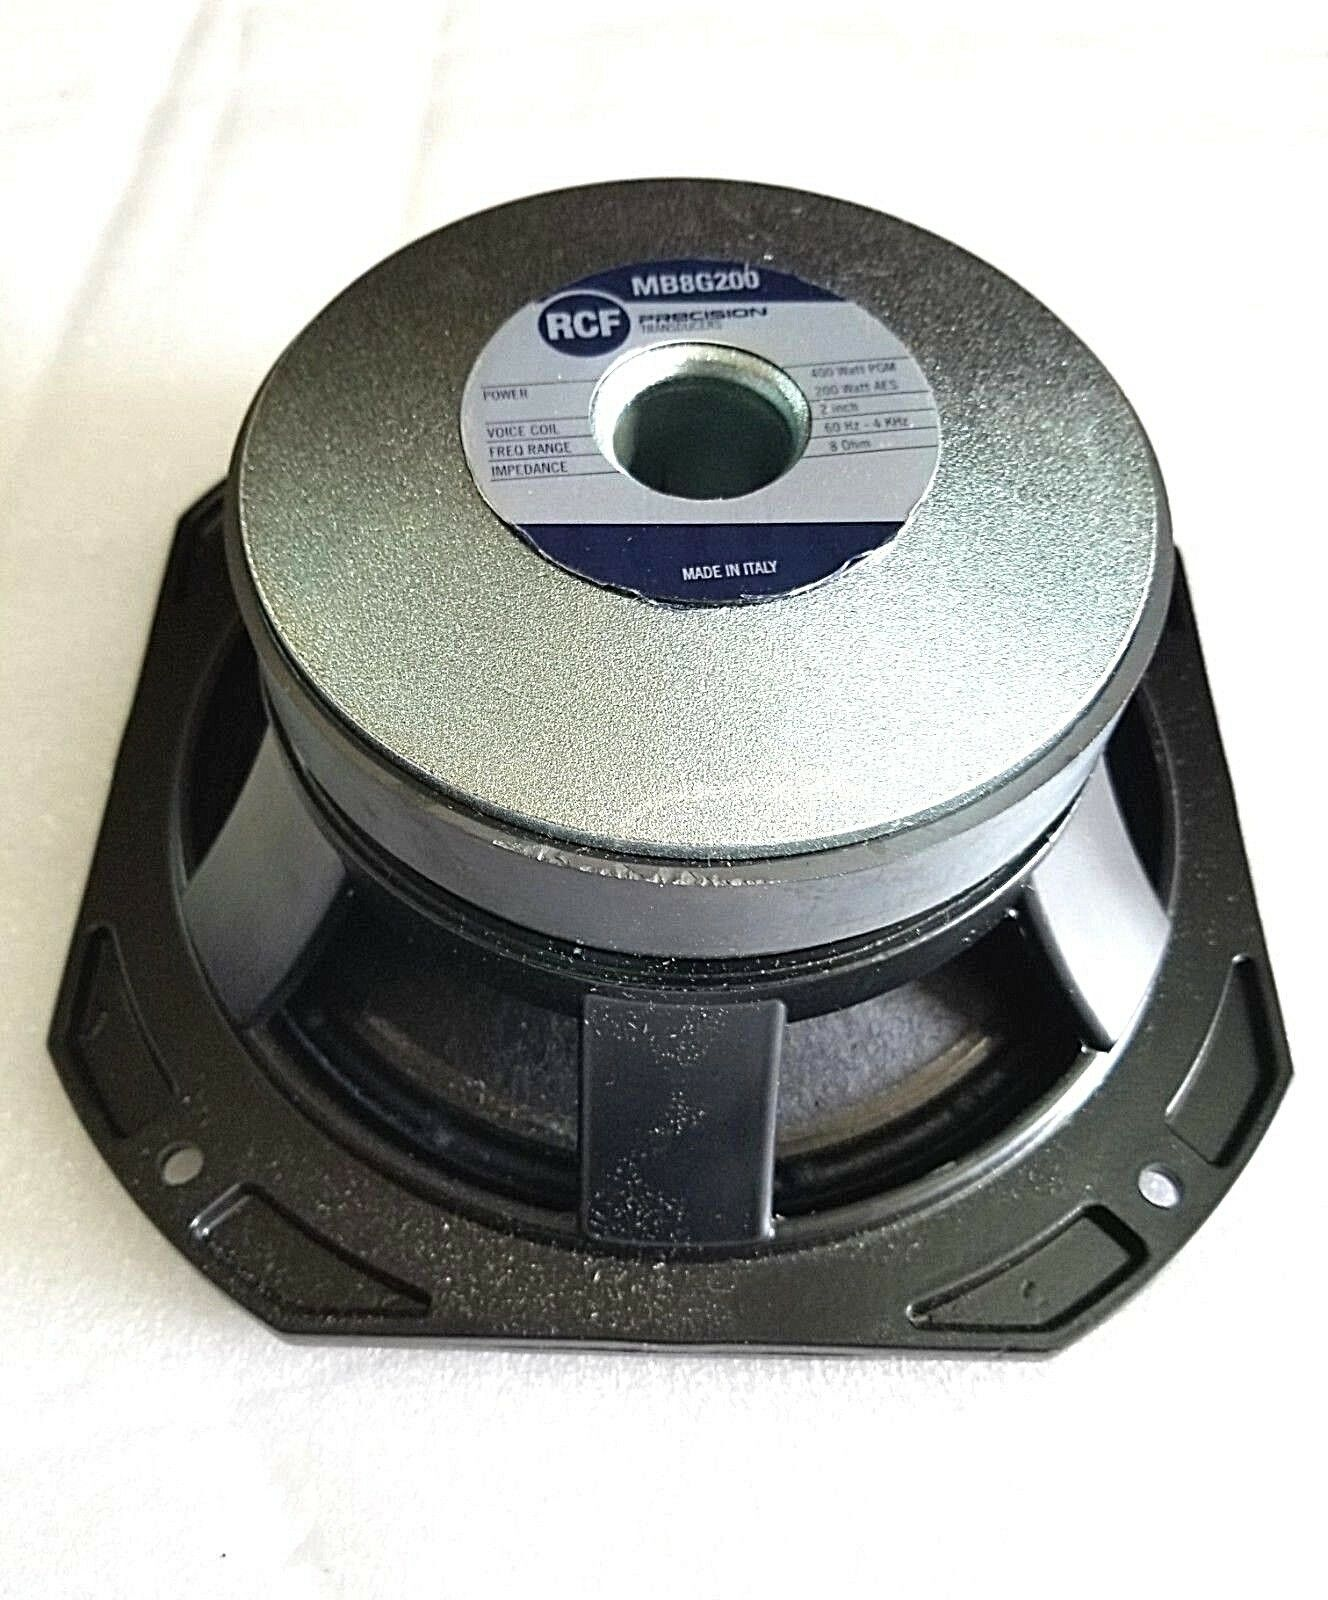 RCF MB8G200 8  LOW FREQUENCY MID-BASS WOOFER SPEAKER (ONE)..